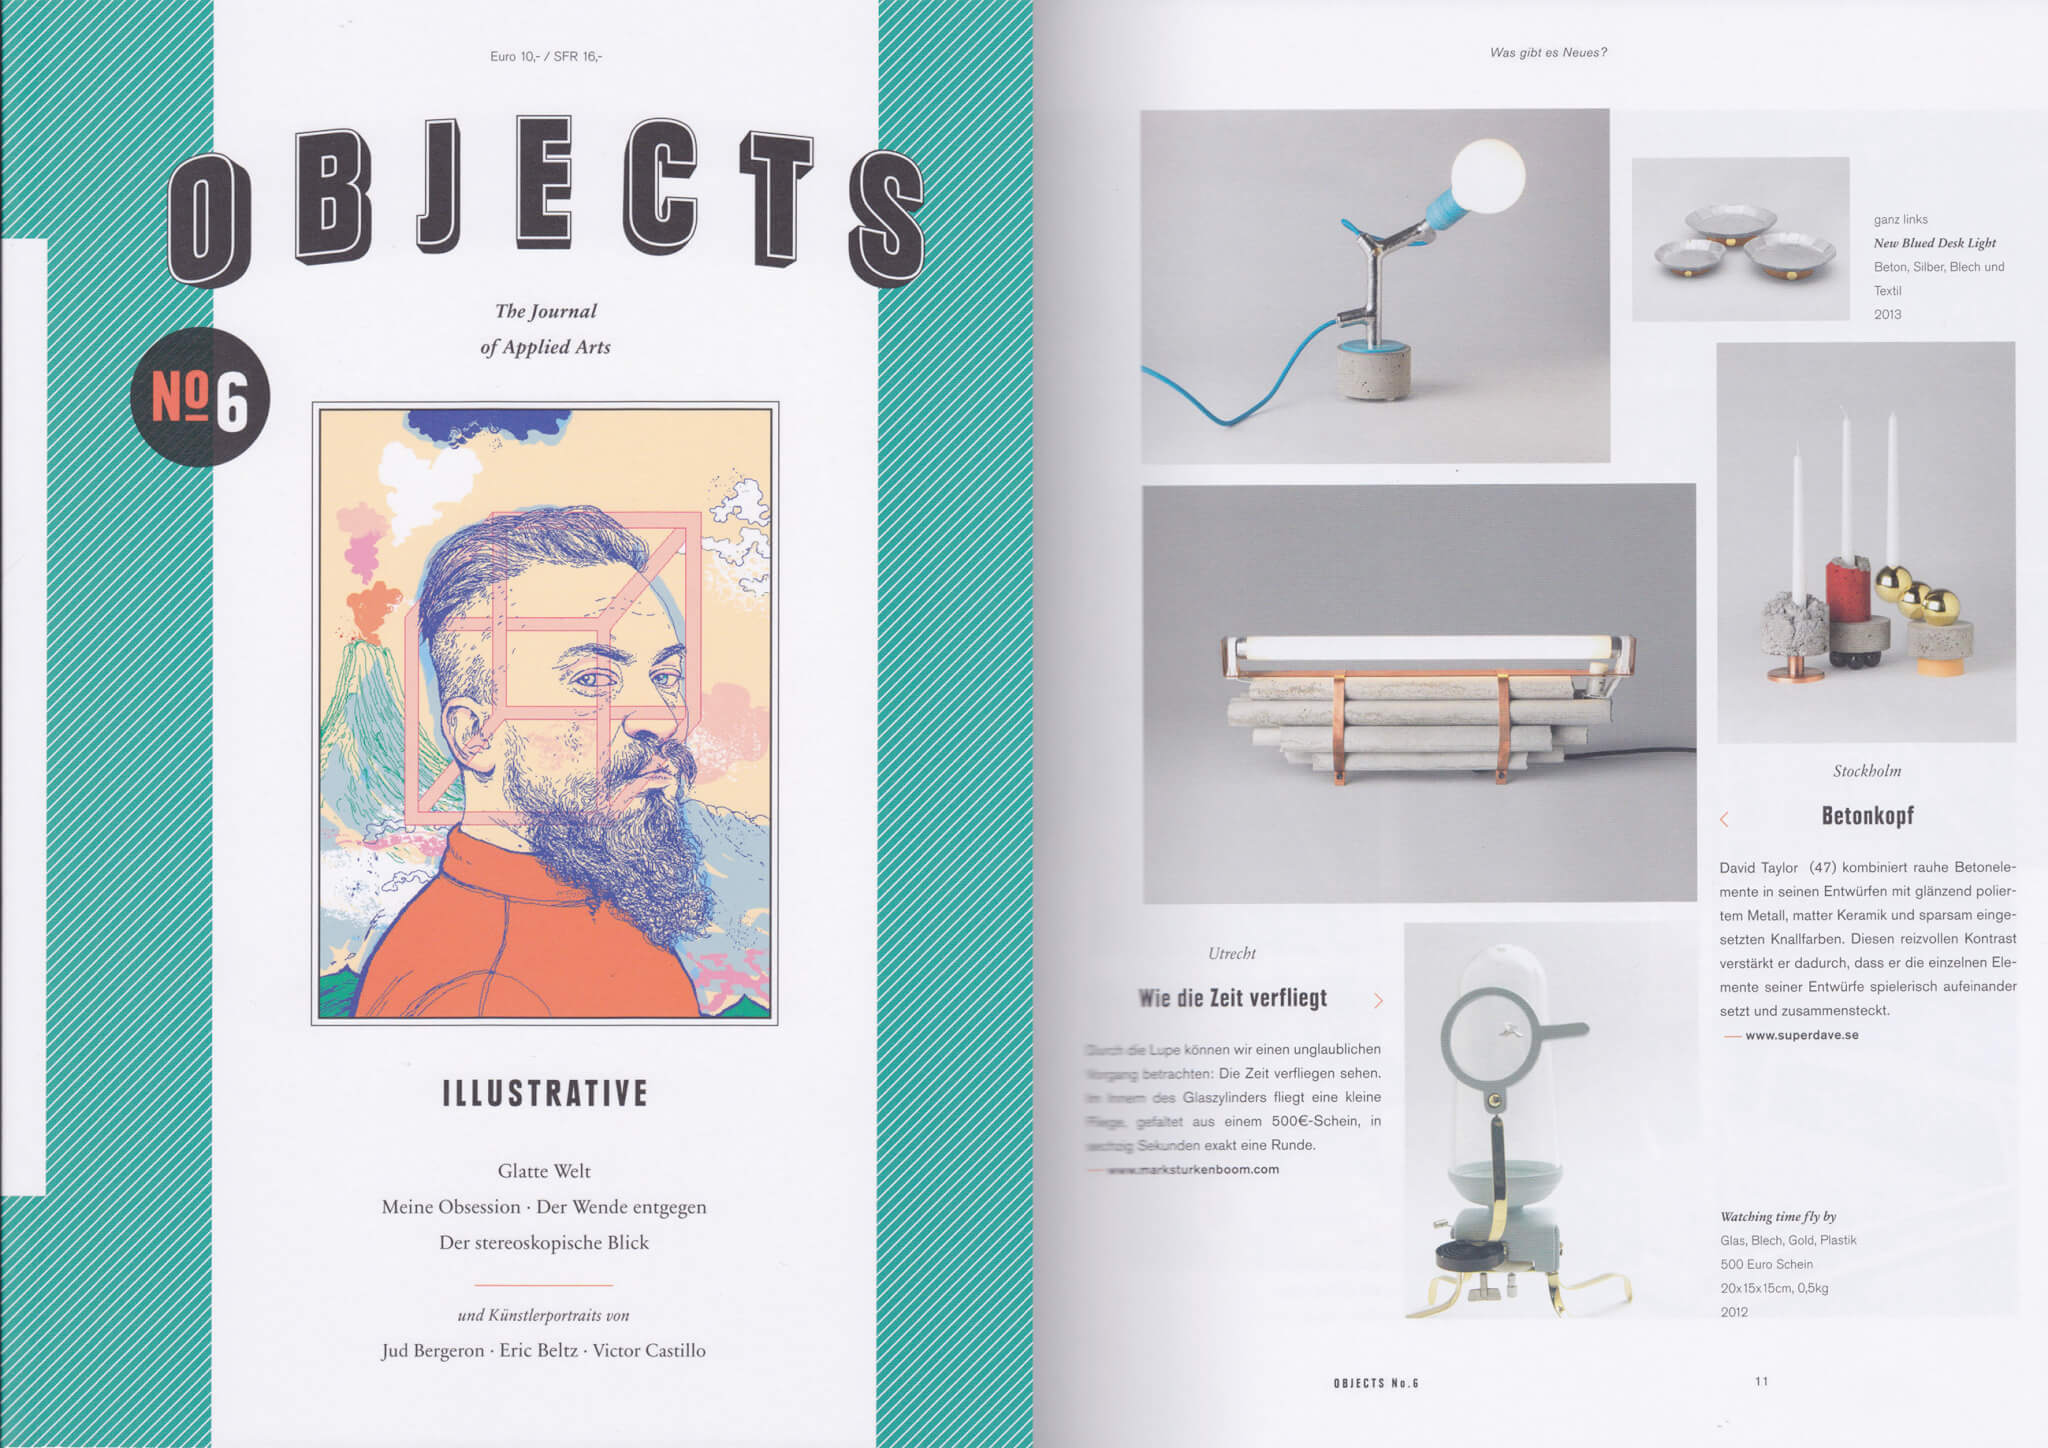 OBJECTS 09-13